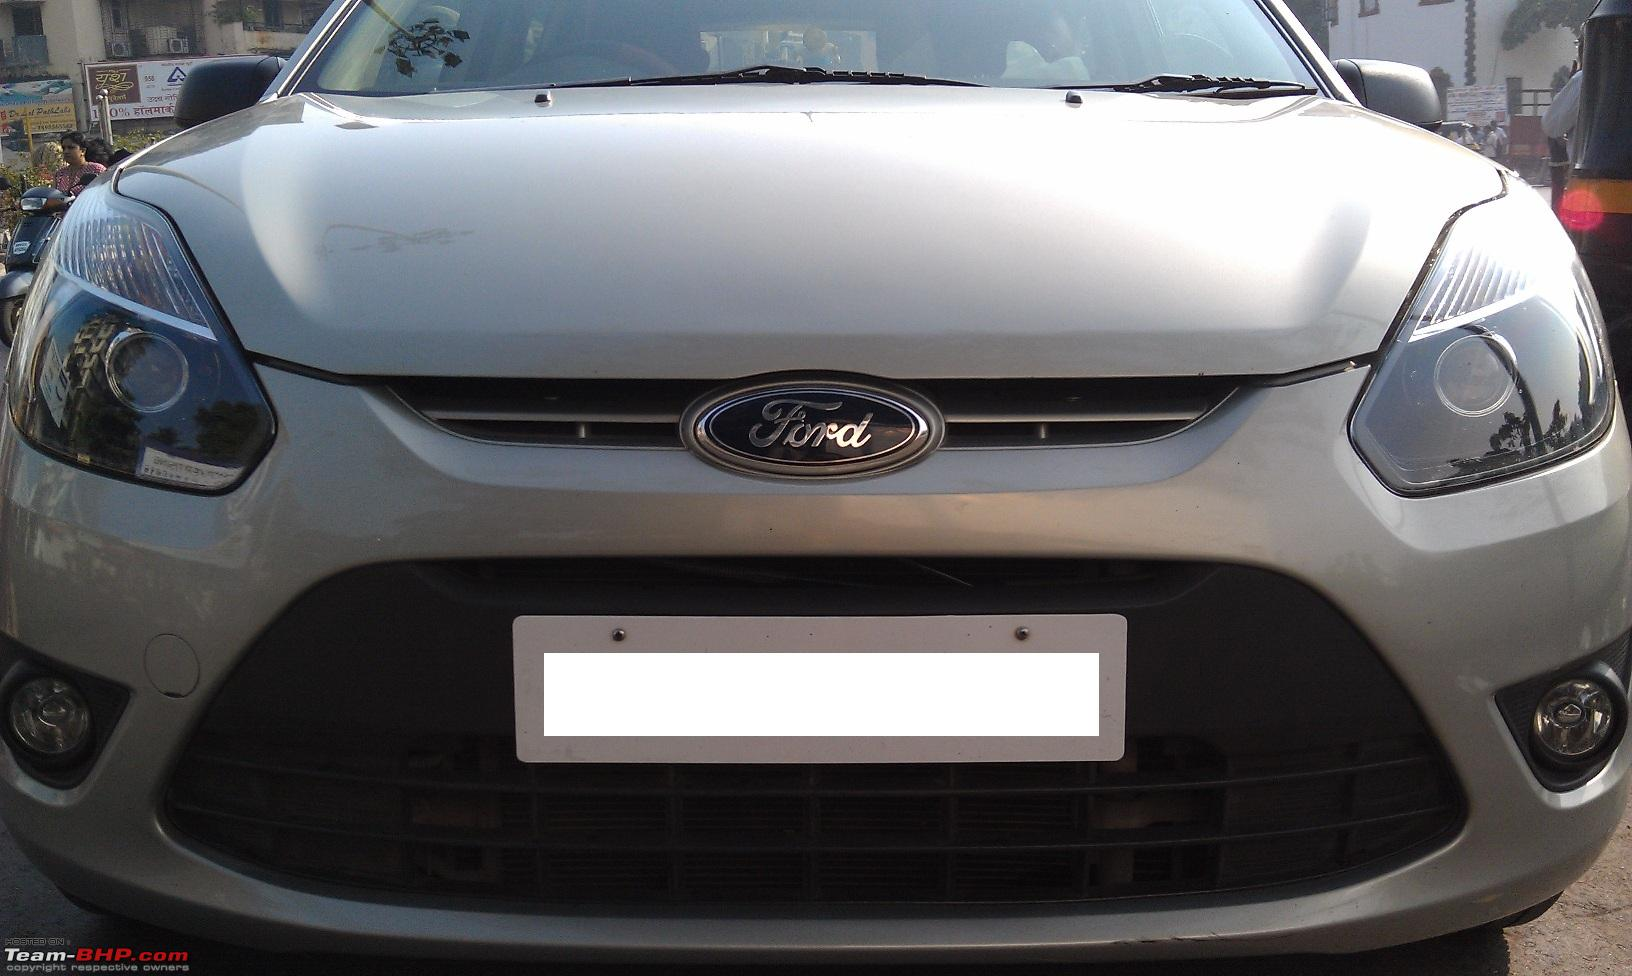 hight resolution of ford figo projector headlights light up the way imag0498 jpg